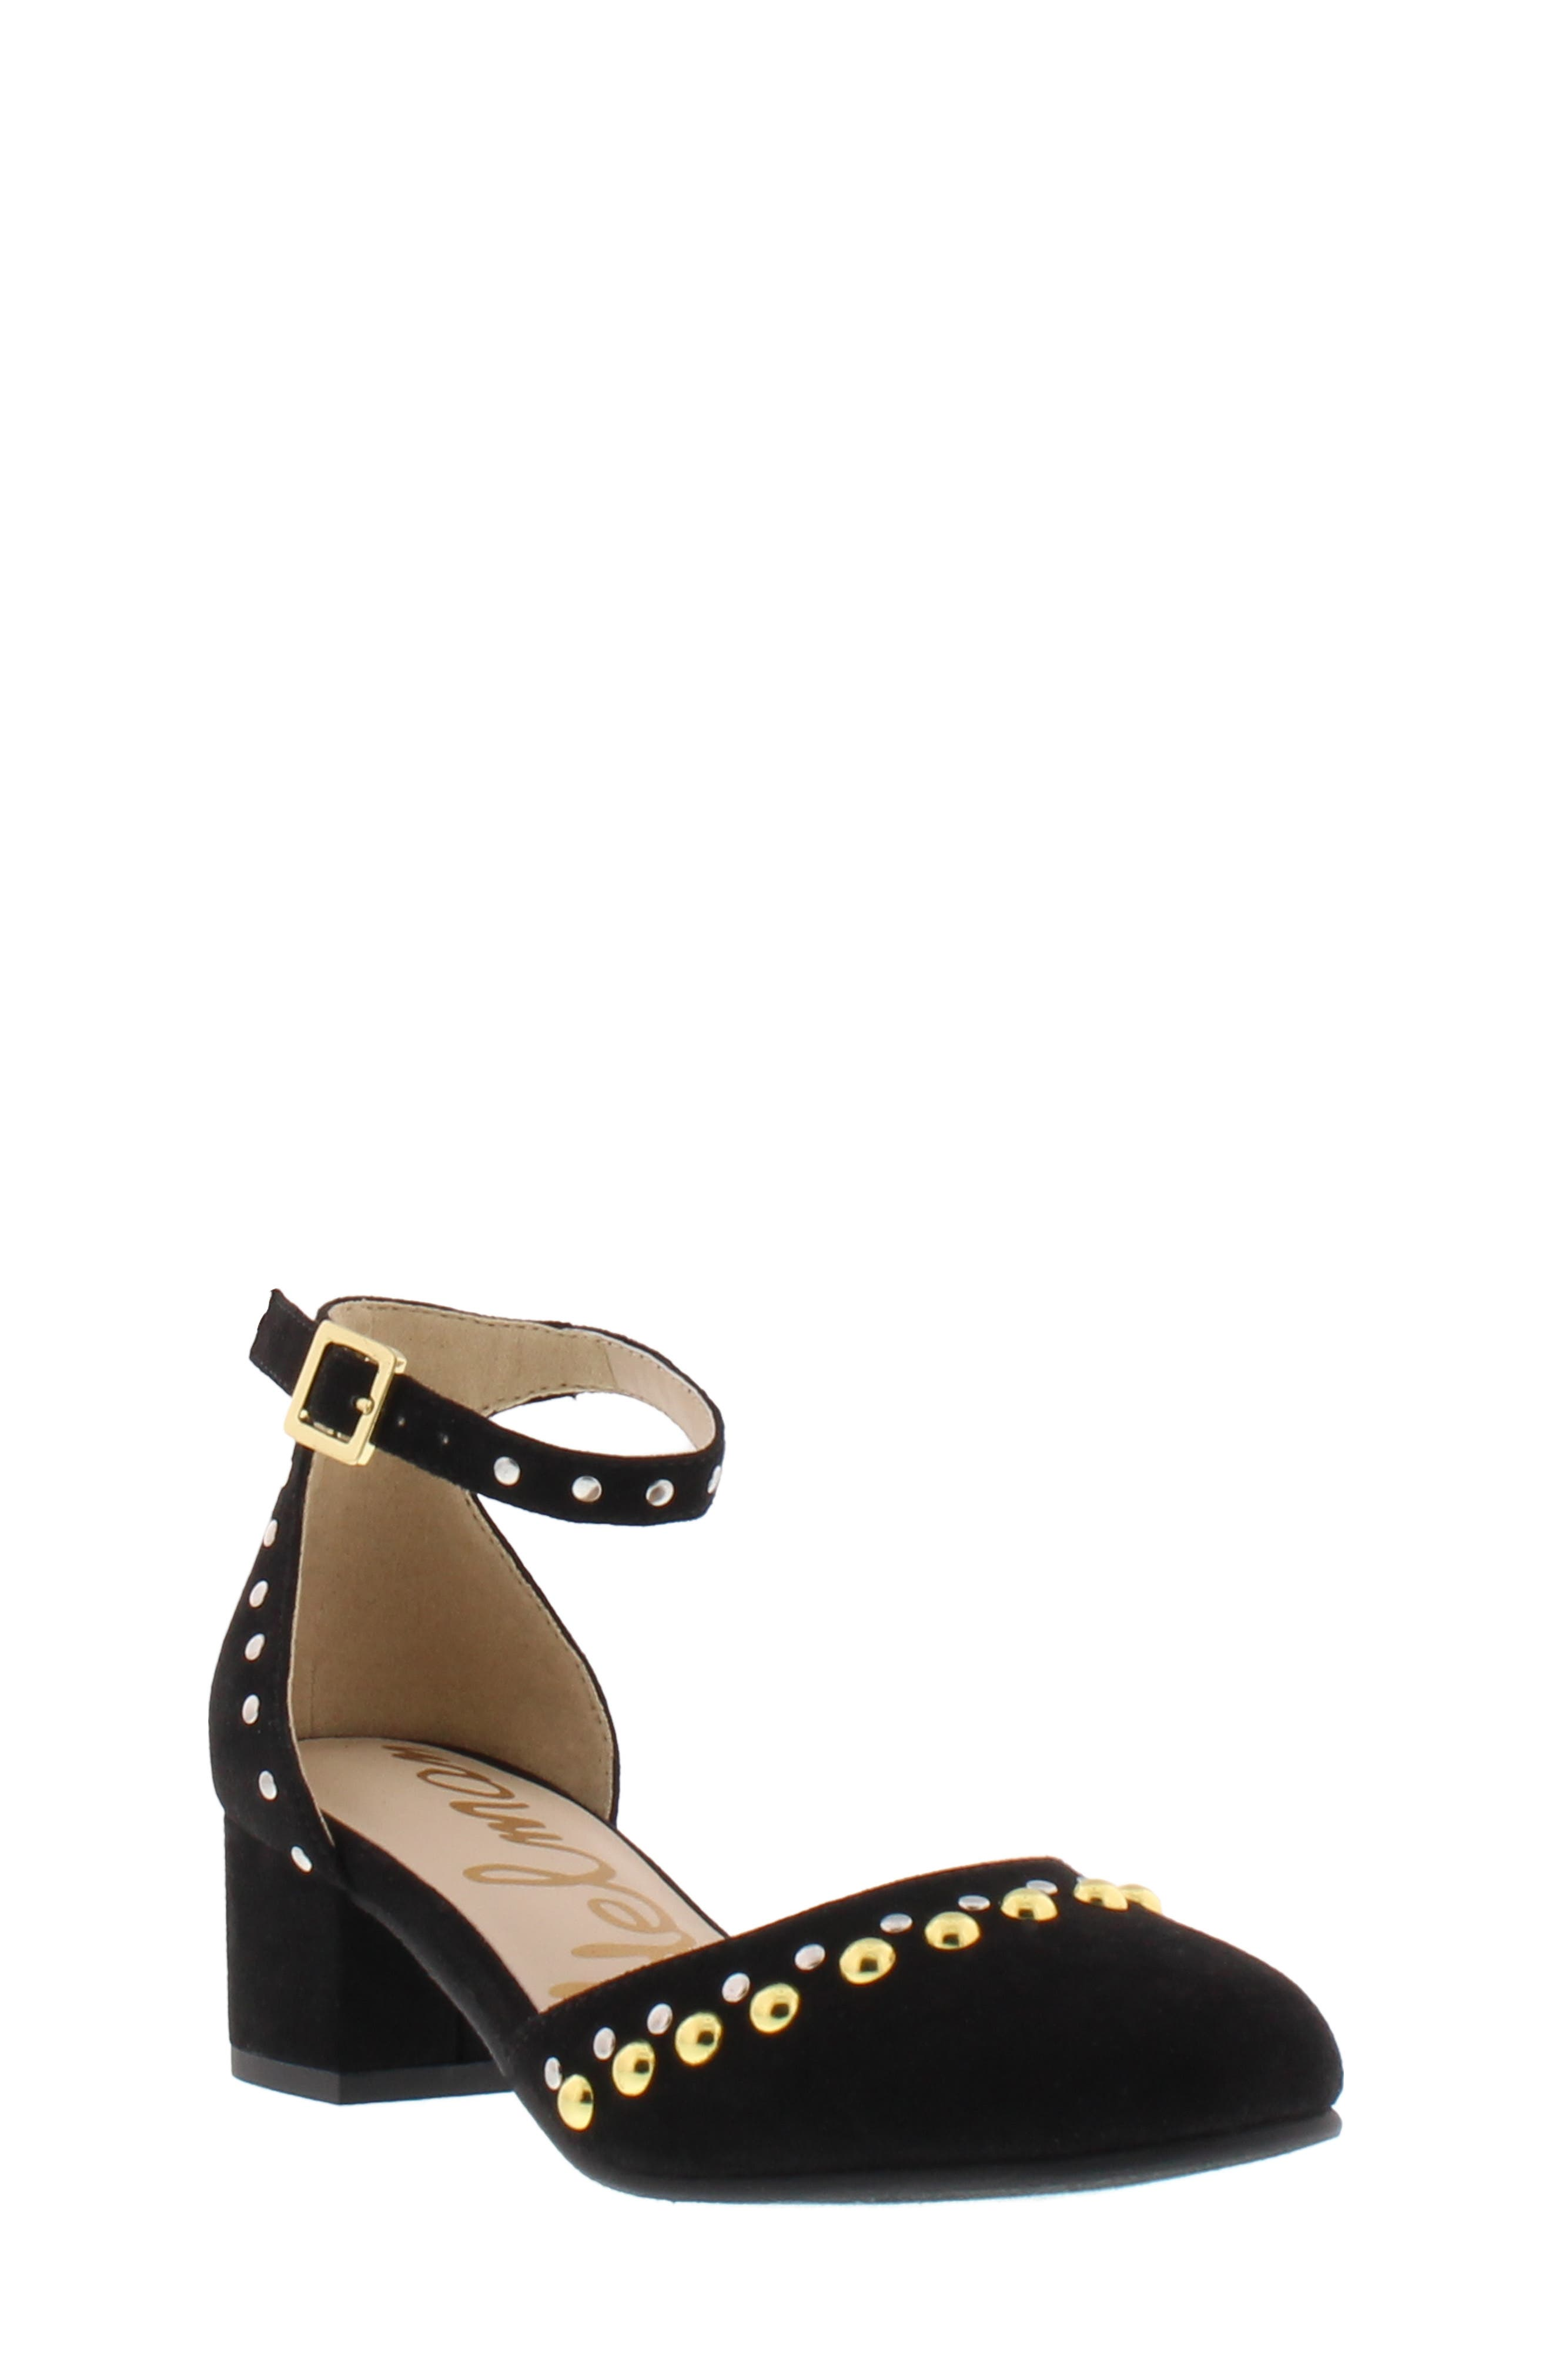 Evelyn Edie Pump,                             Main thumbnail 1, color,                             BLACK